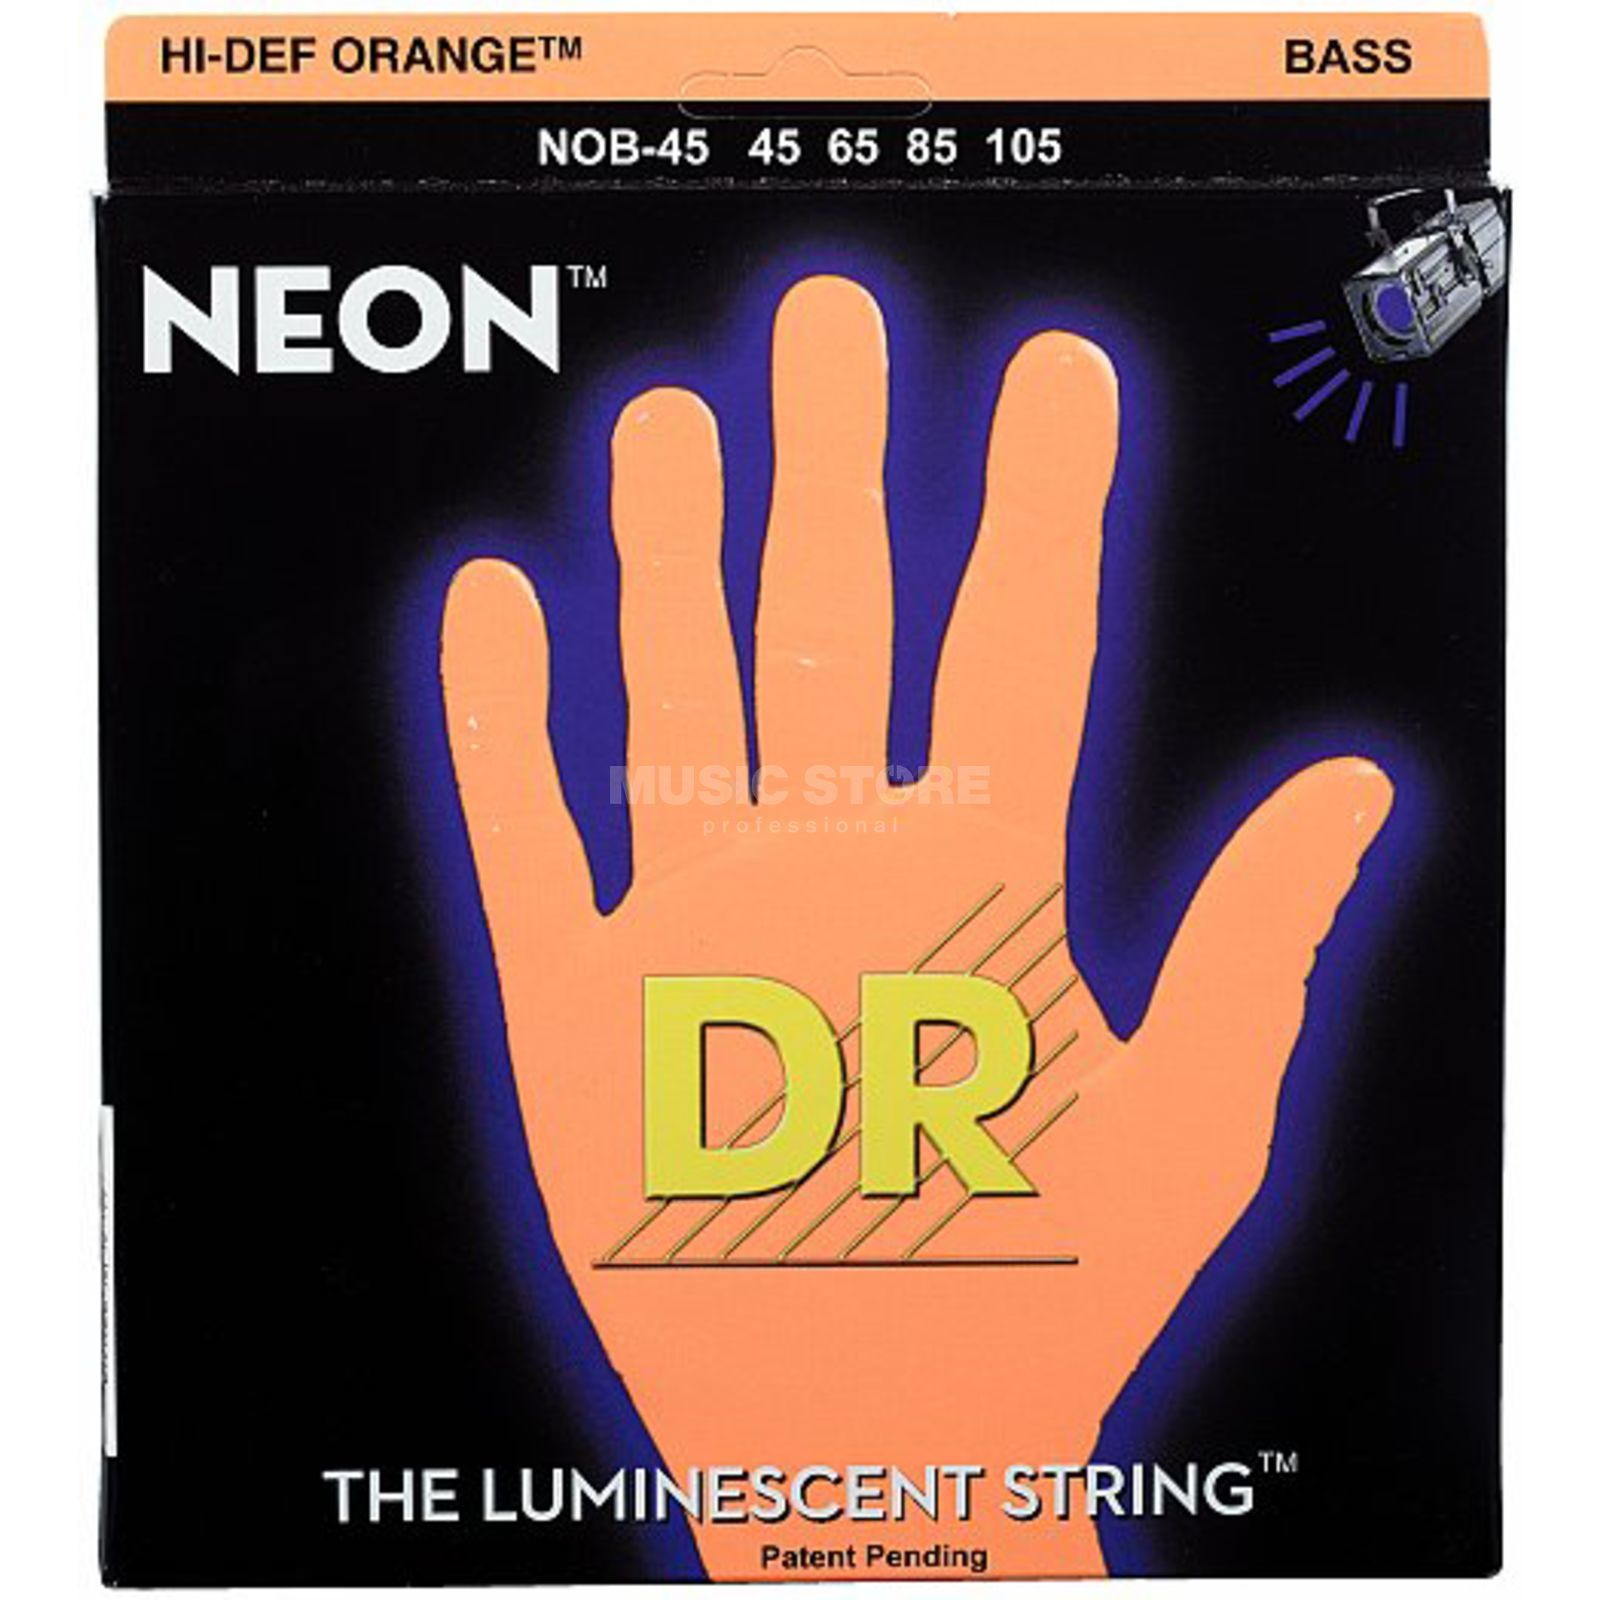 DR 4 Bass Strings 45-105 Hi-Def Neon Orange Neon NOB-45 Immagine prodotto